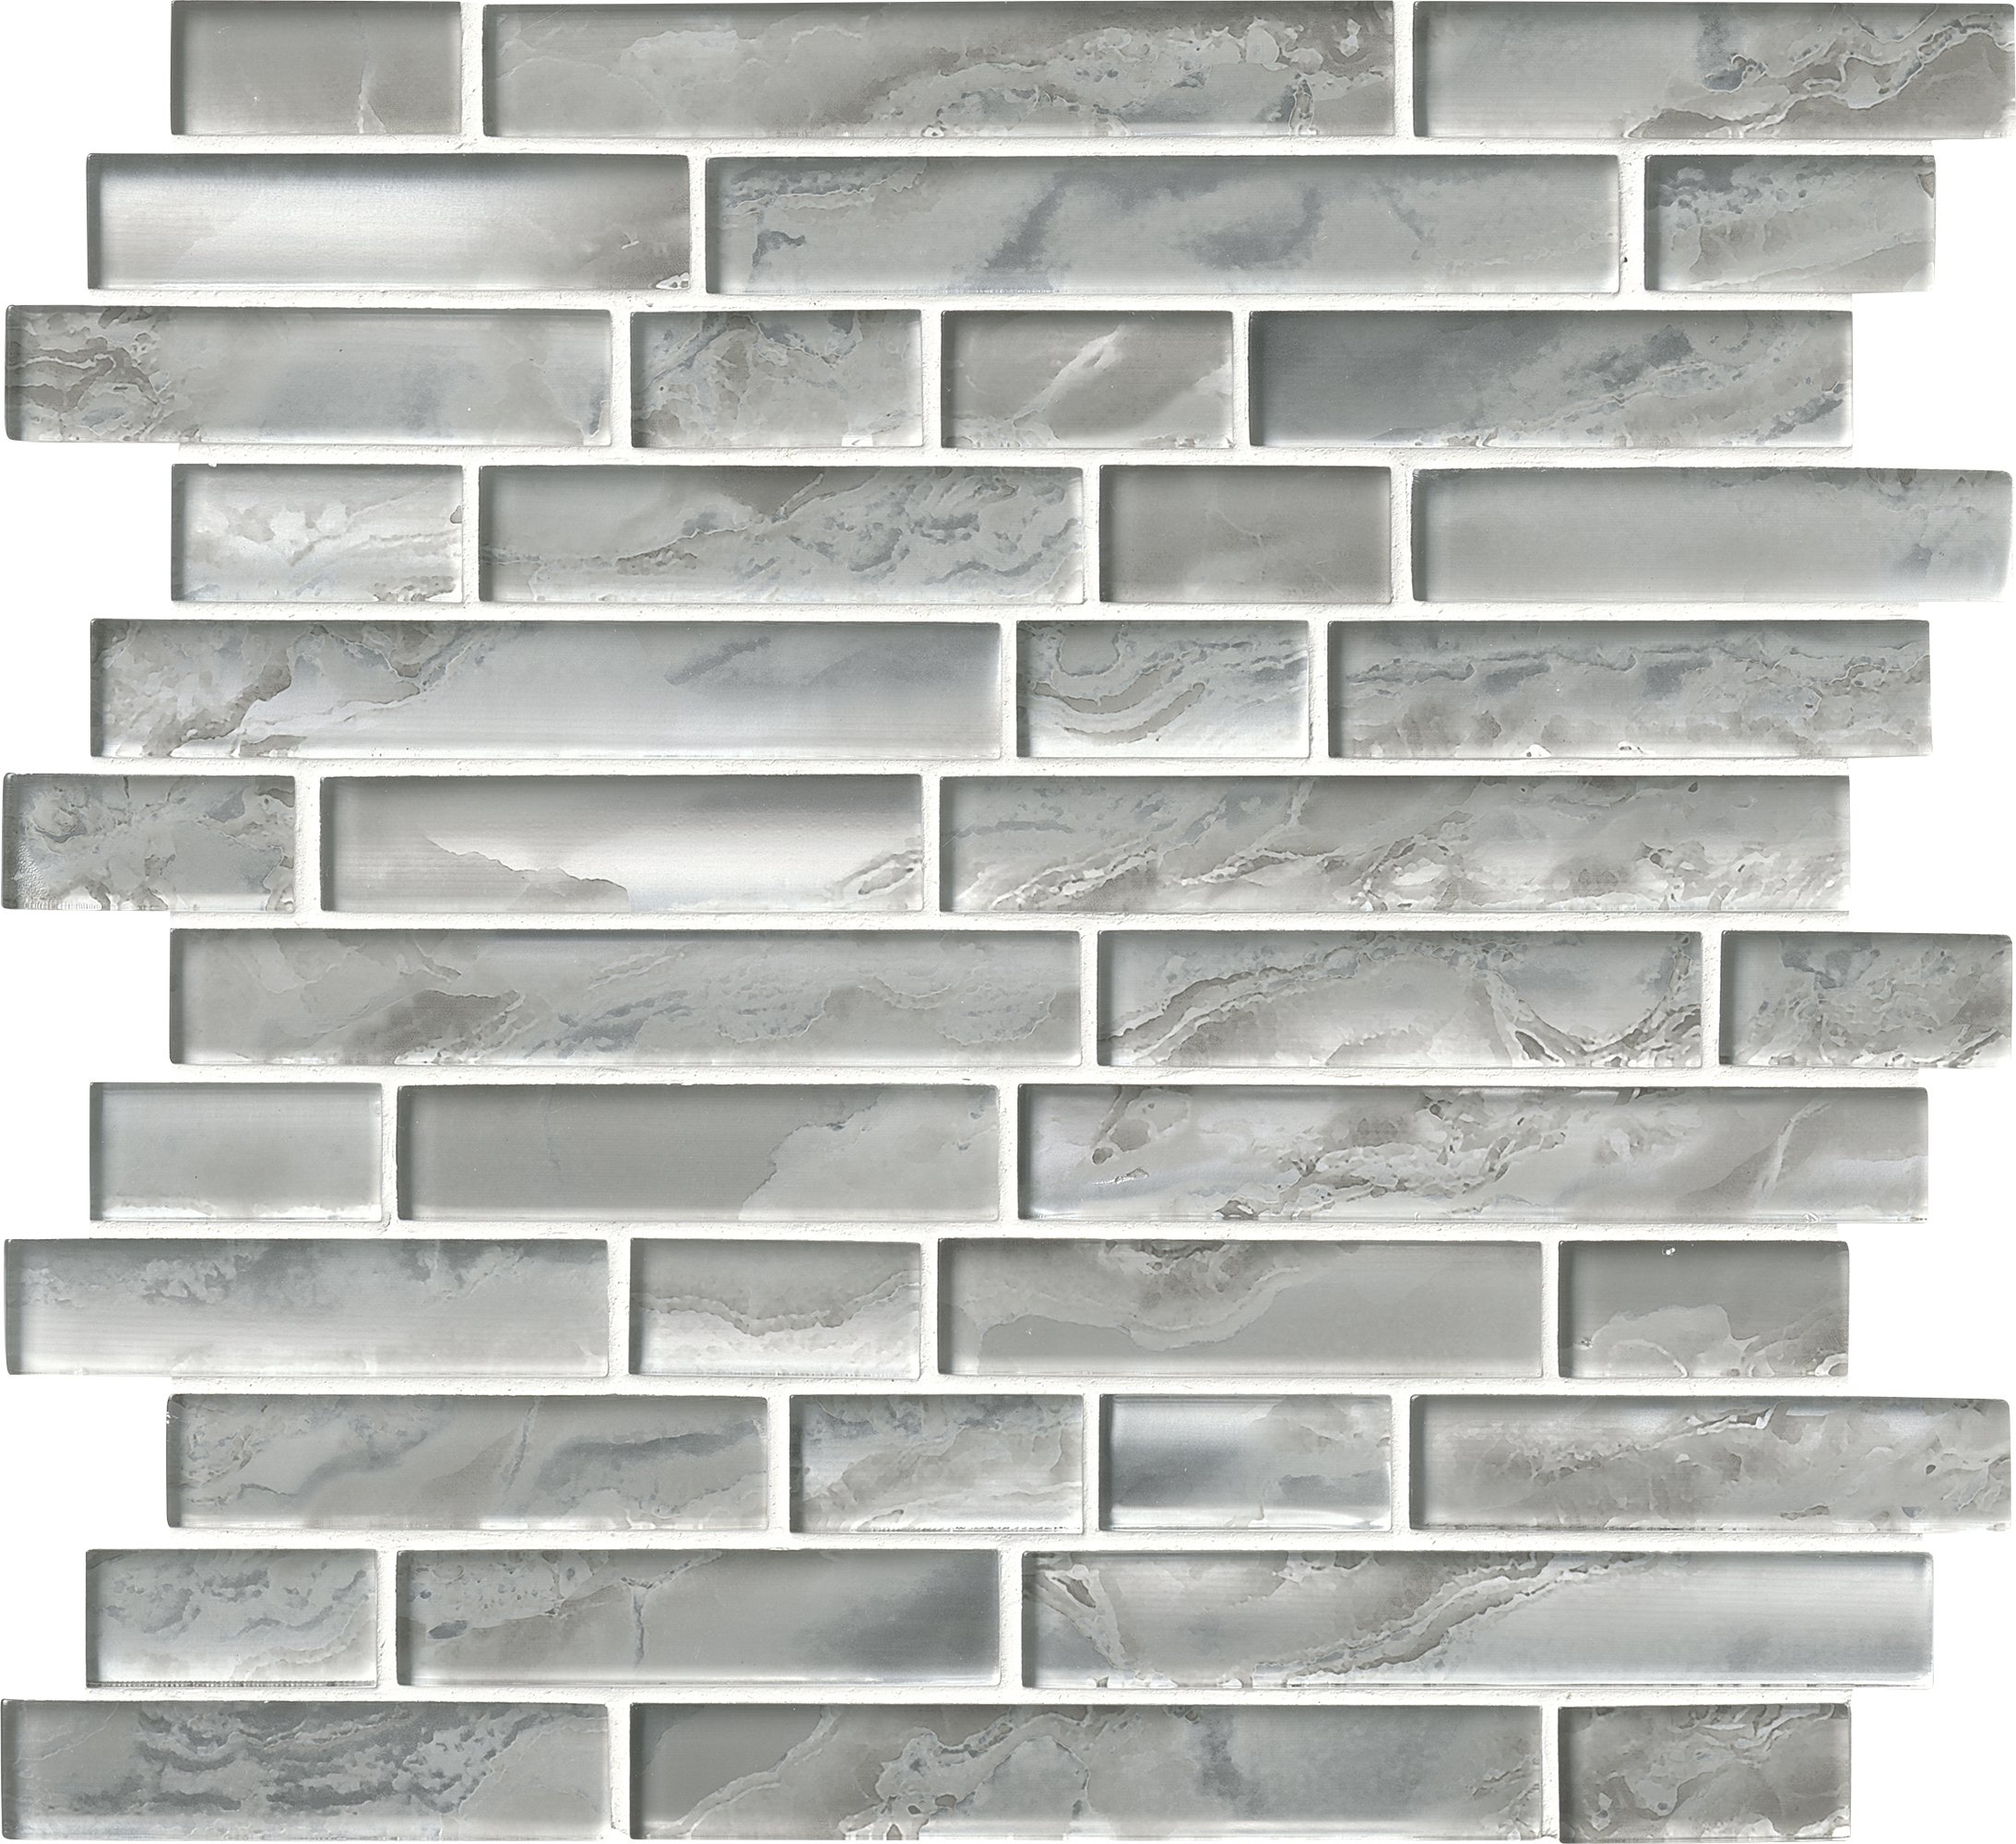 M S International Silver Canvas Interlocking 12 In. X 8 mm Glass Mesh-Mounted Mosaic Tile, (10 sq. ft., 10 pieces per case)